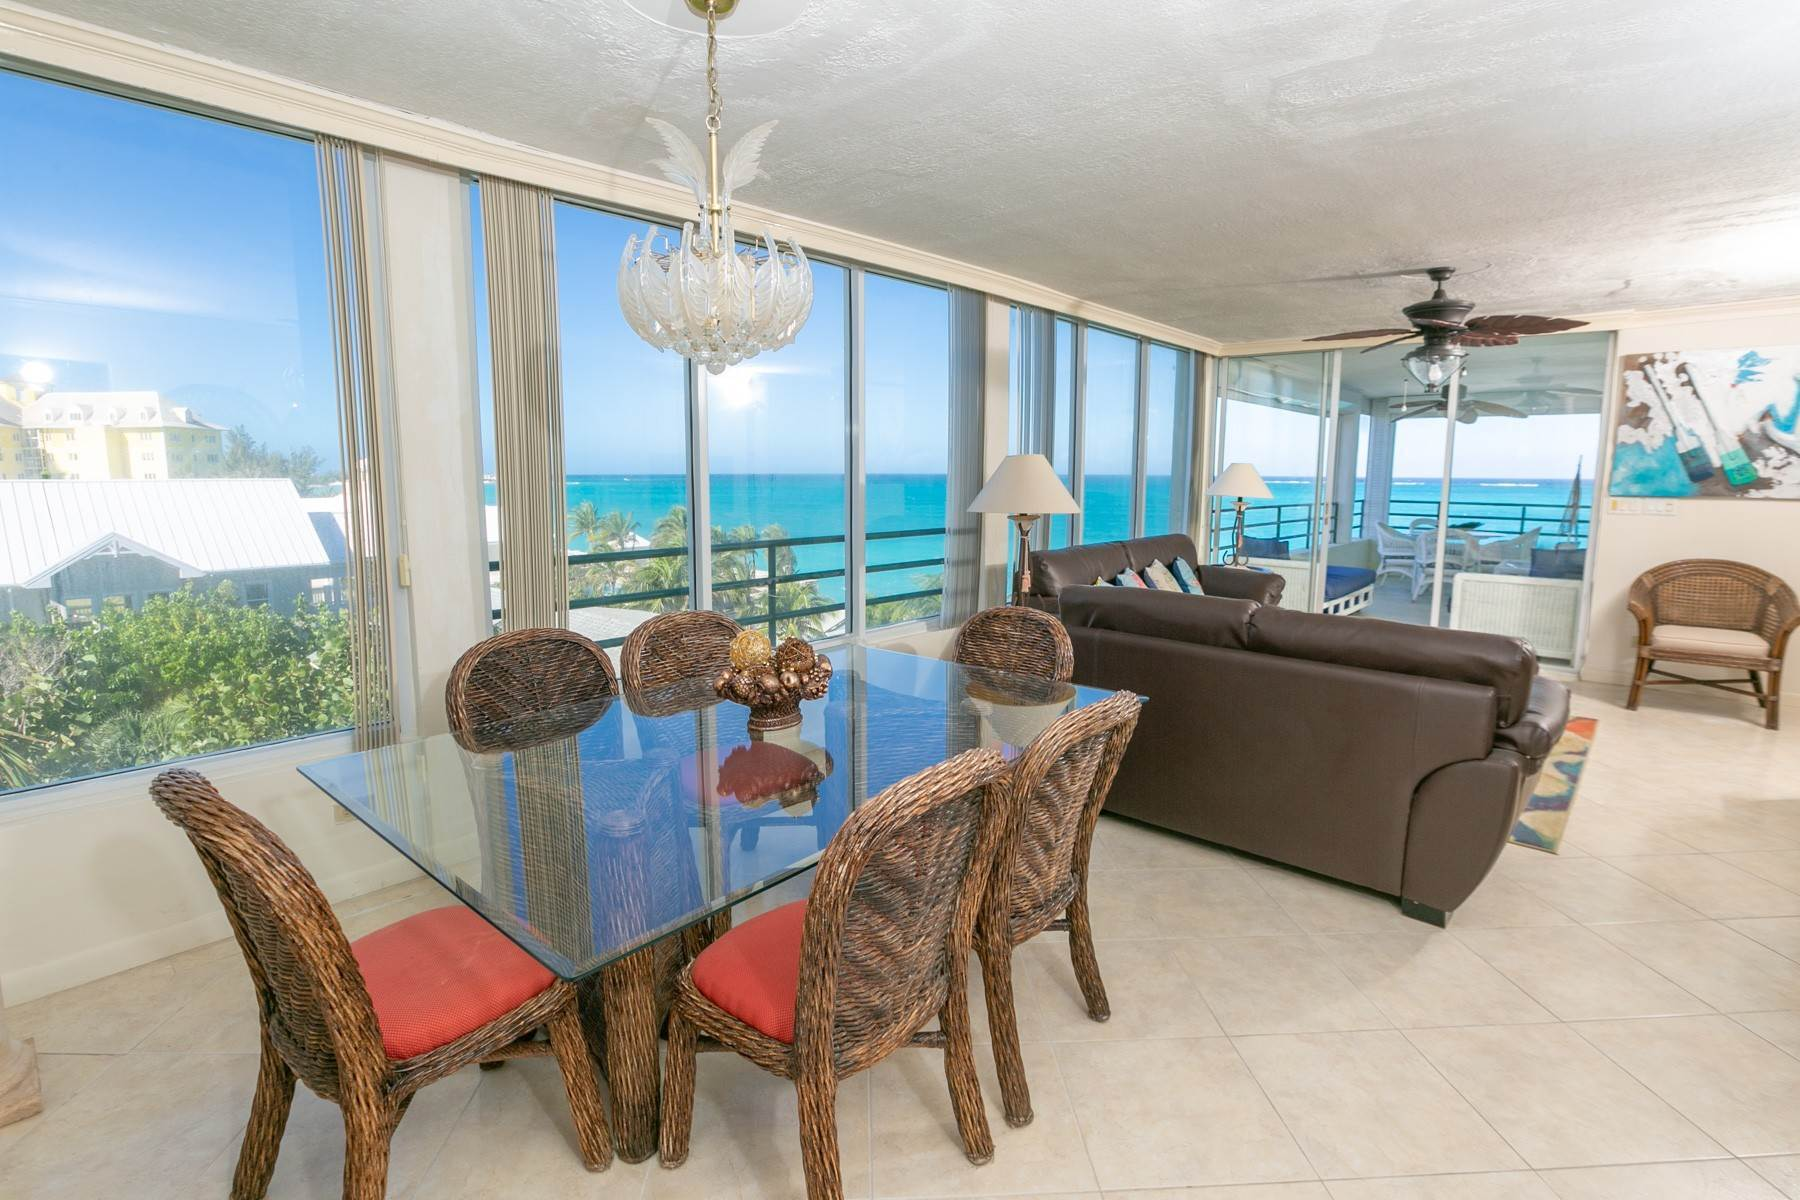 Co-op / Condominio por un Alquiler en Beautiful Vista Bella Penthouse - MLS 43024 Vista Bella, Cable Beach, Nueva Providencia / Nassau Bahamas